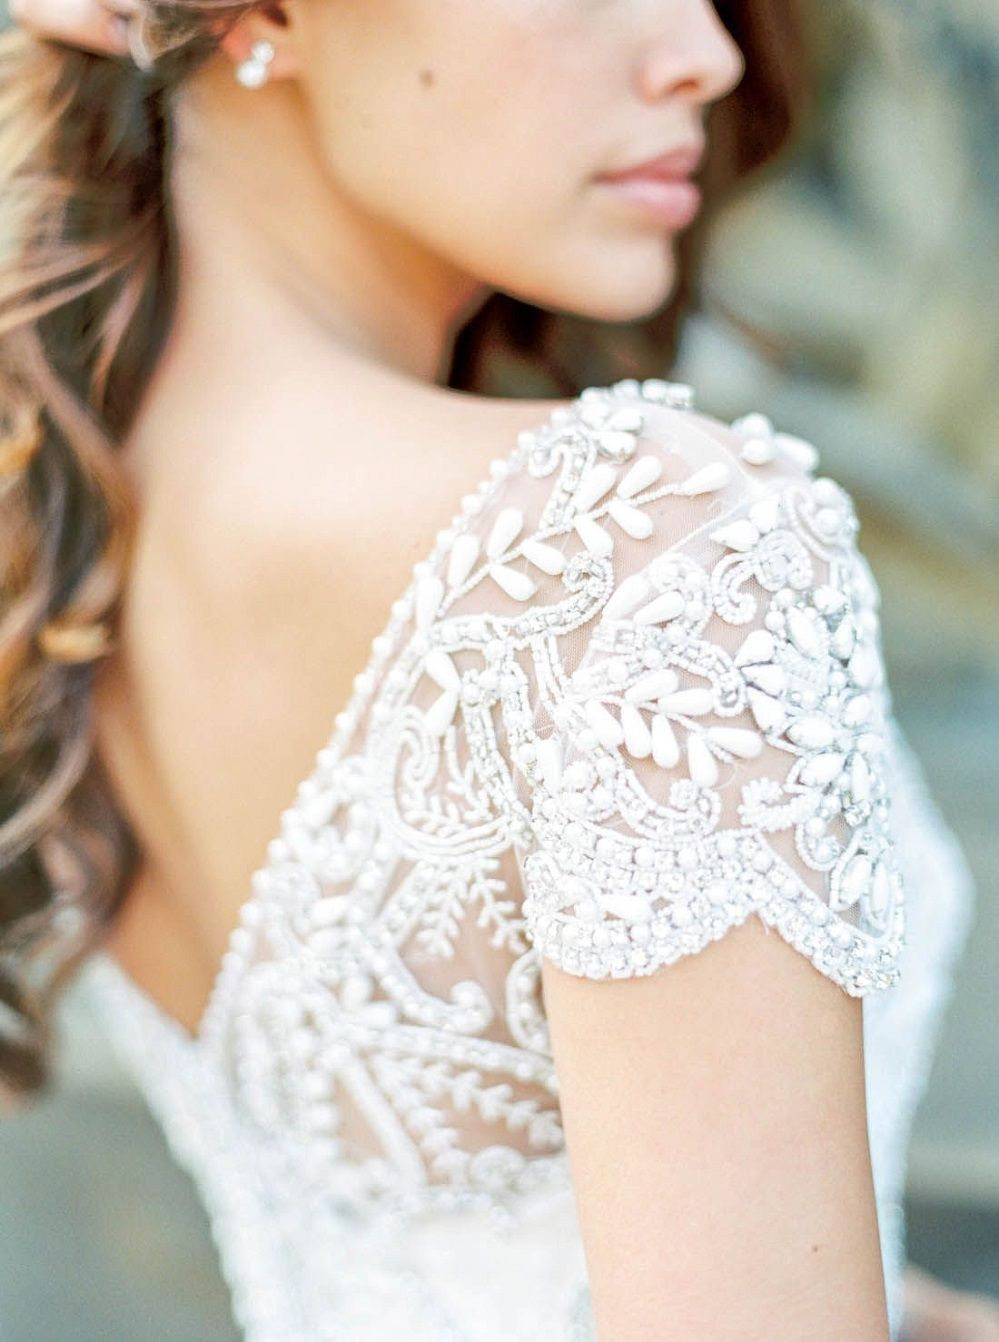 Best Alternative Wedding Dresses to Swoon Over Stunning wedding dresses with amazing details, lace wedding dress,long sleeves wedding dress,deep plunging neckline wedding dress,heavy embellishment wedding dress #weddingdress #weddinggown